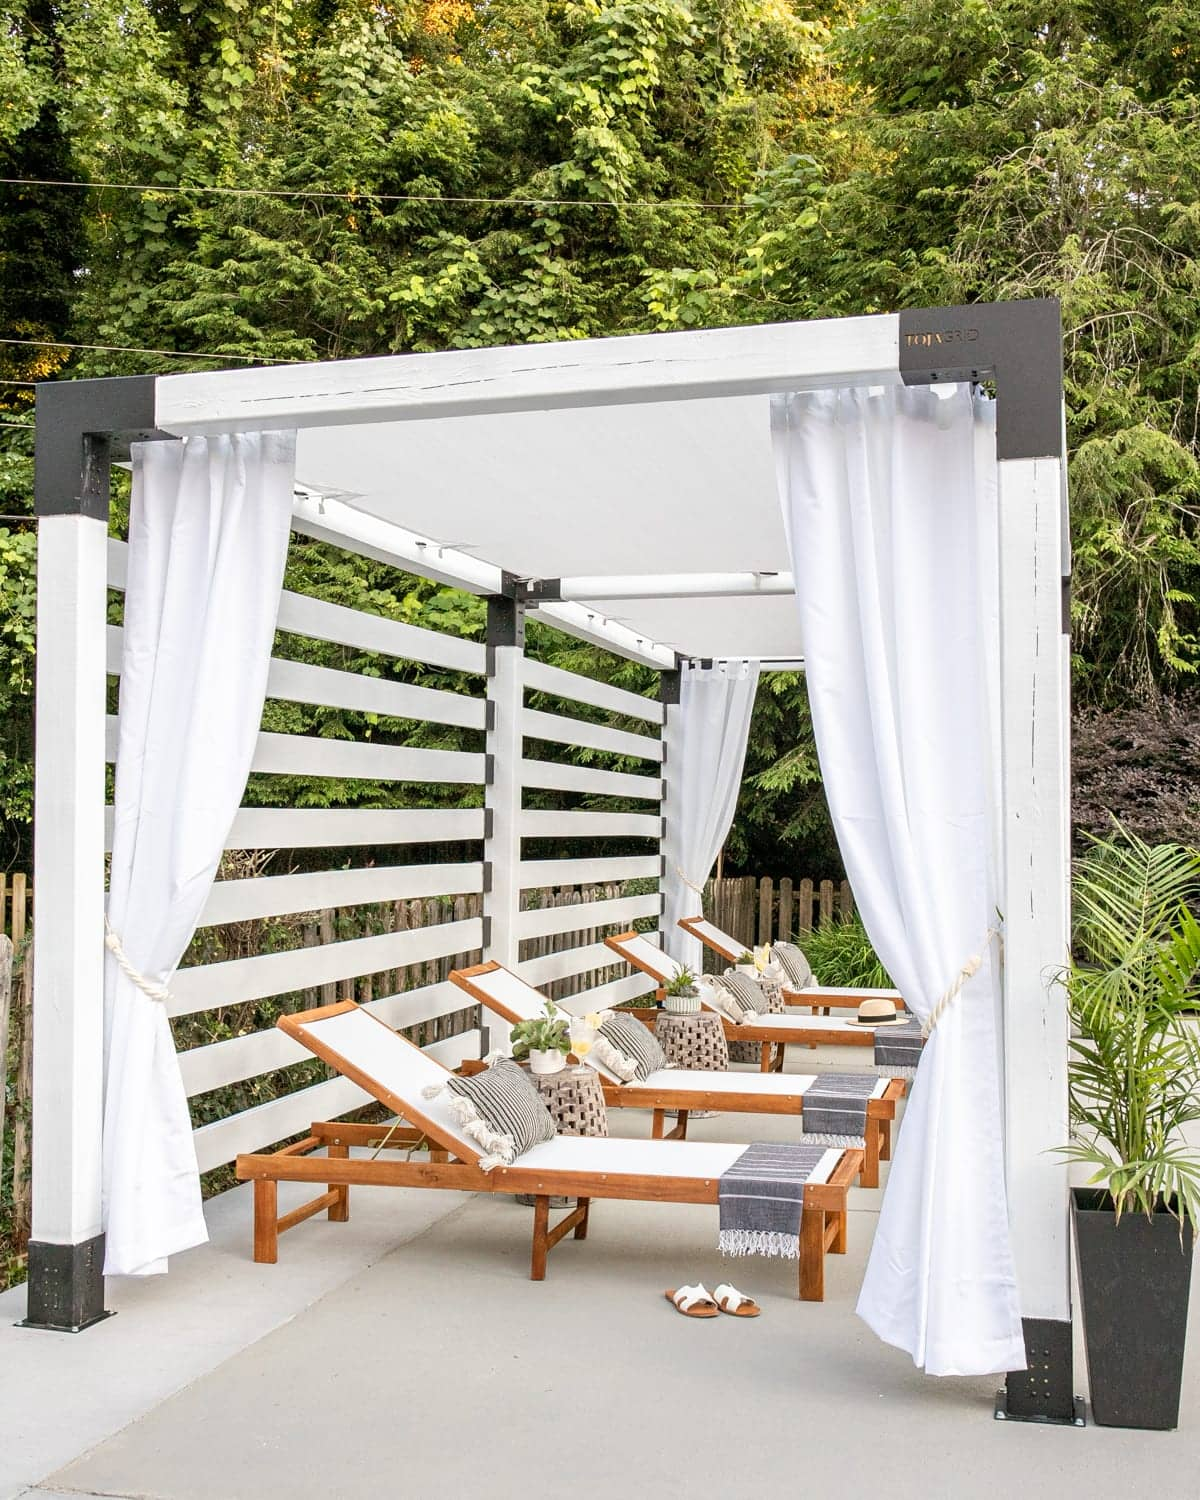 outdoor lounge chairs under a white pergola cabana with outdoor curtains